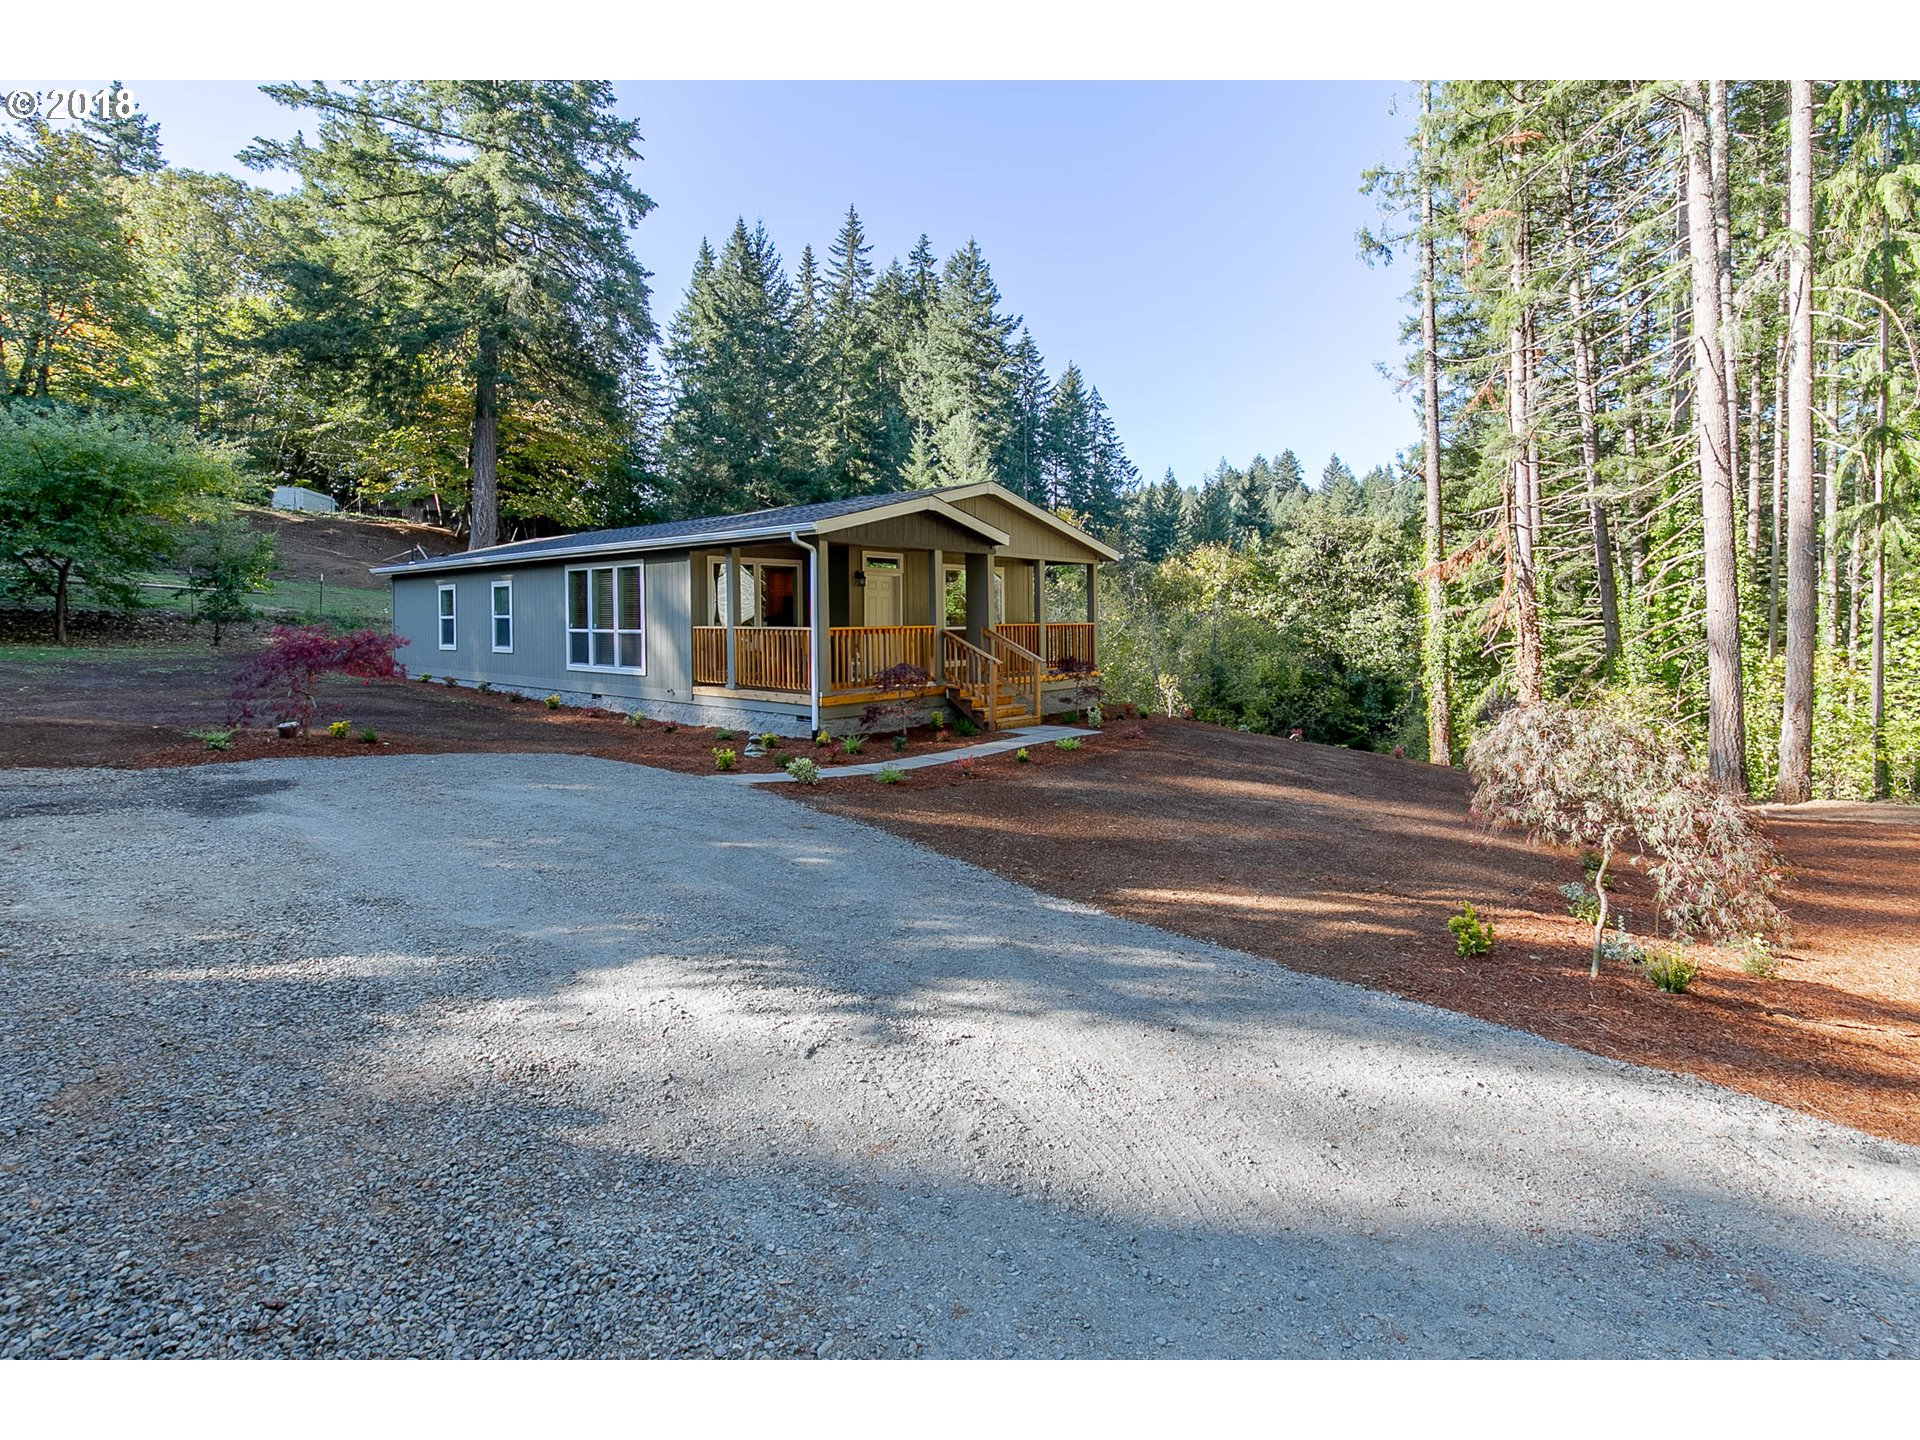 1480 sq. ft 2 bedrooms 2 bathrooms  House For Sale, Estacada, OR